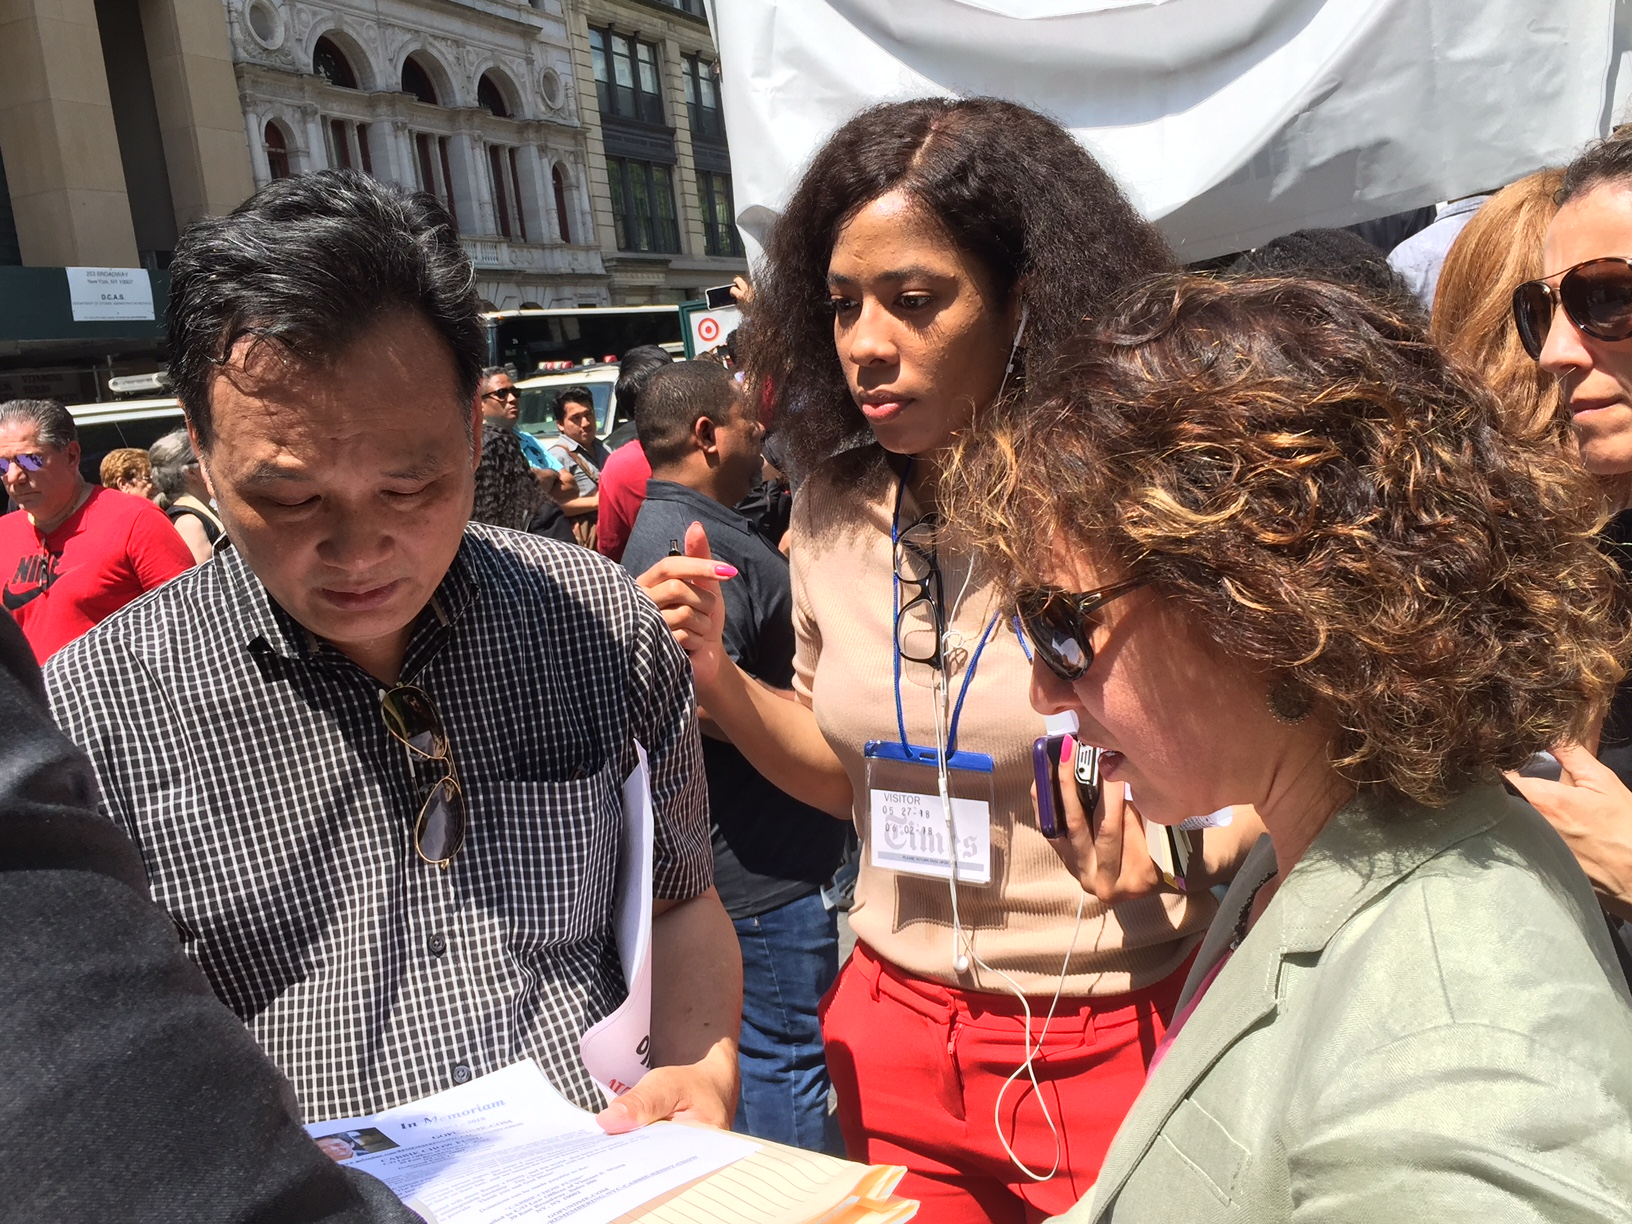 Chairwoman-Joshi-consoles-Richard-Chow-brother-of-Kenny-Chow.-Photo-credit-Dave-Pollack